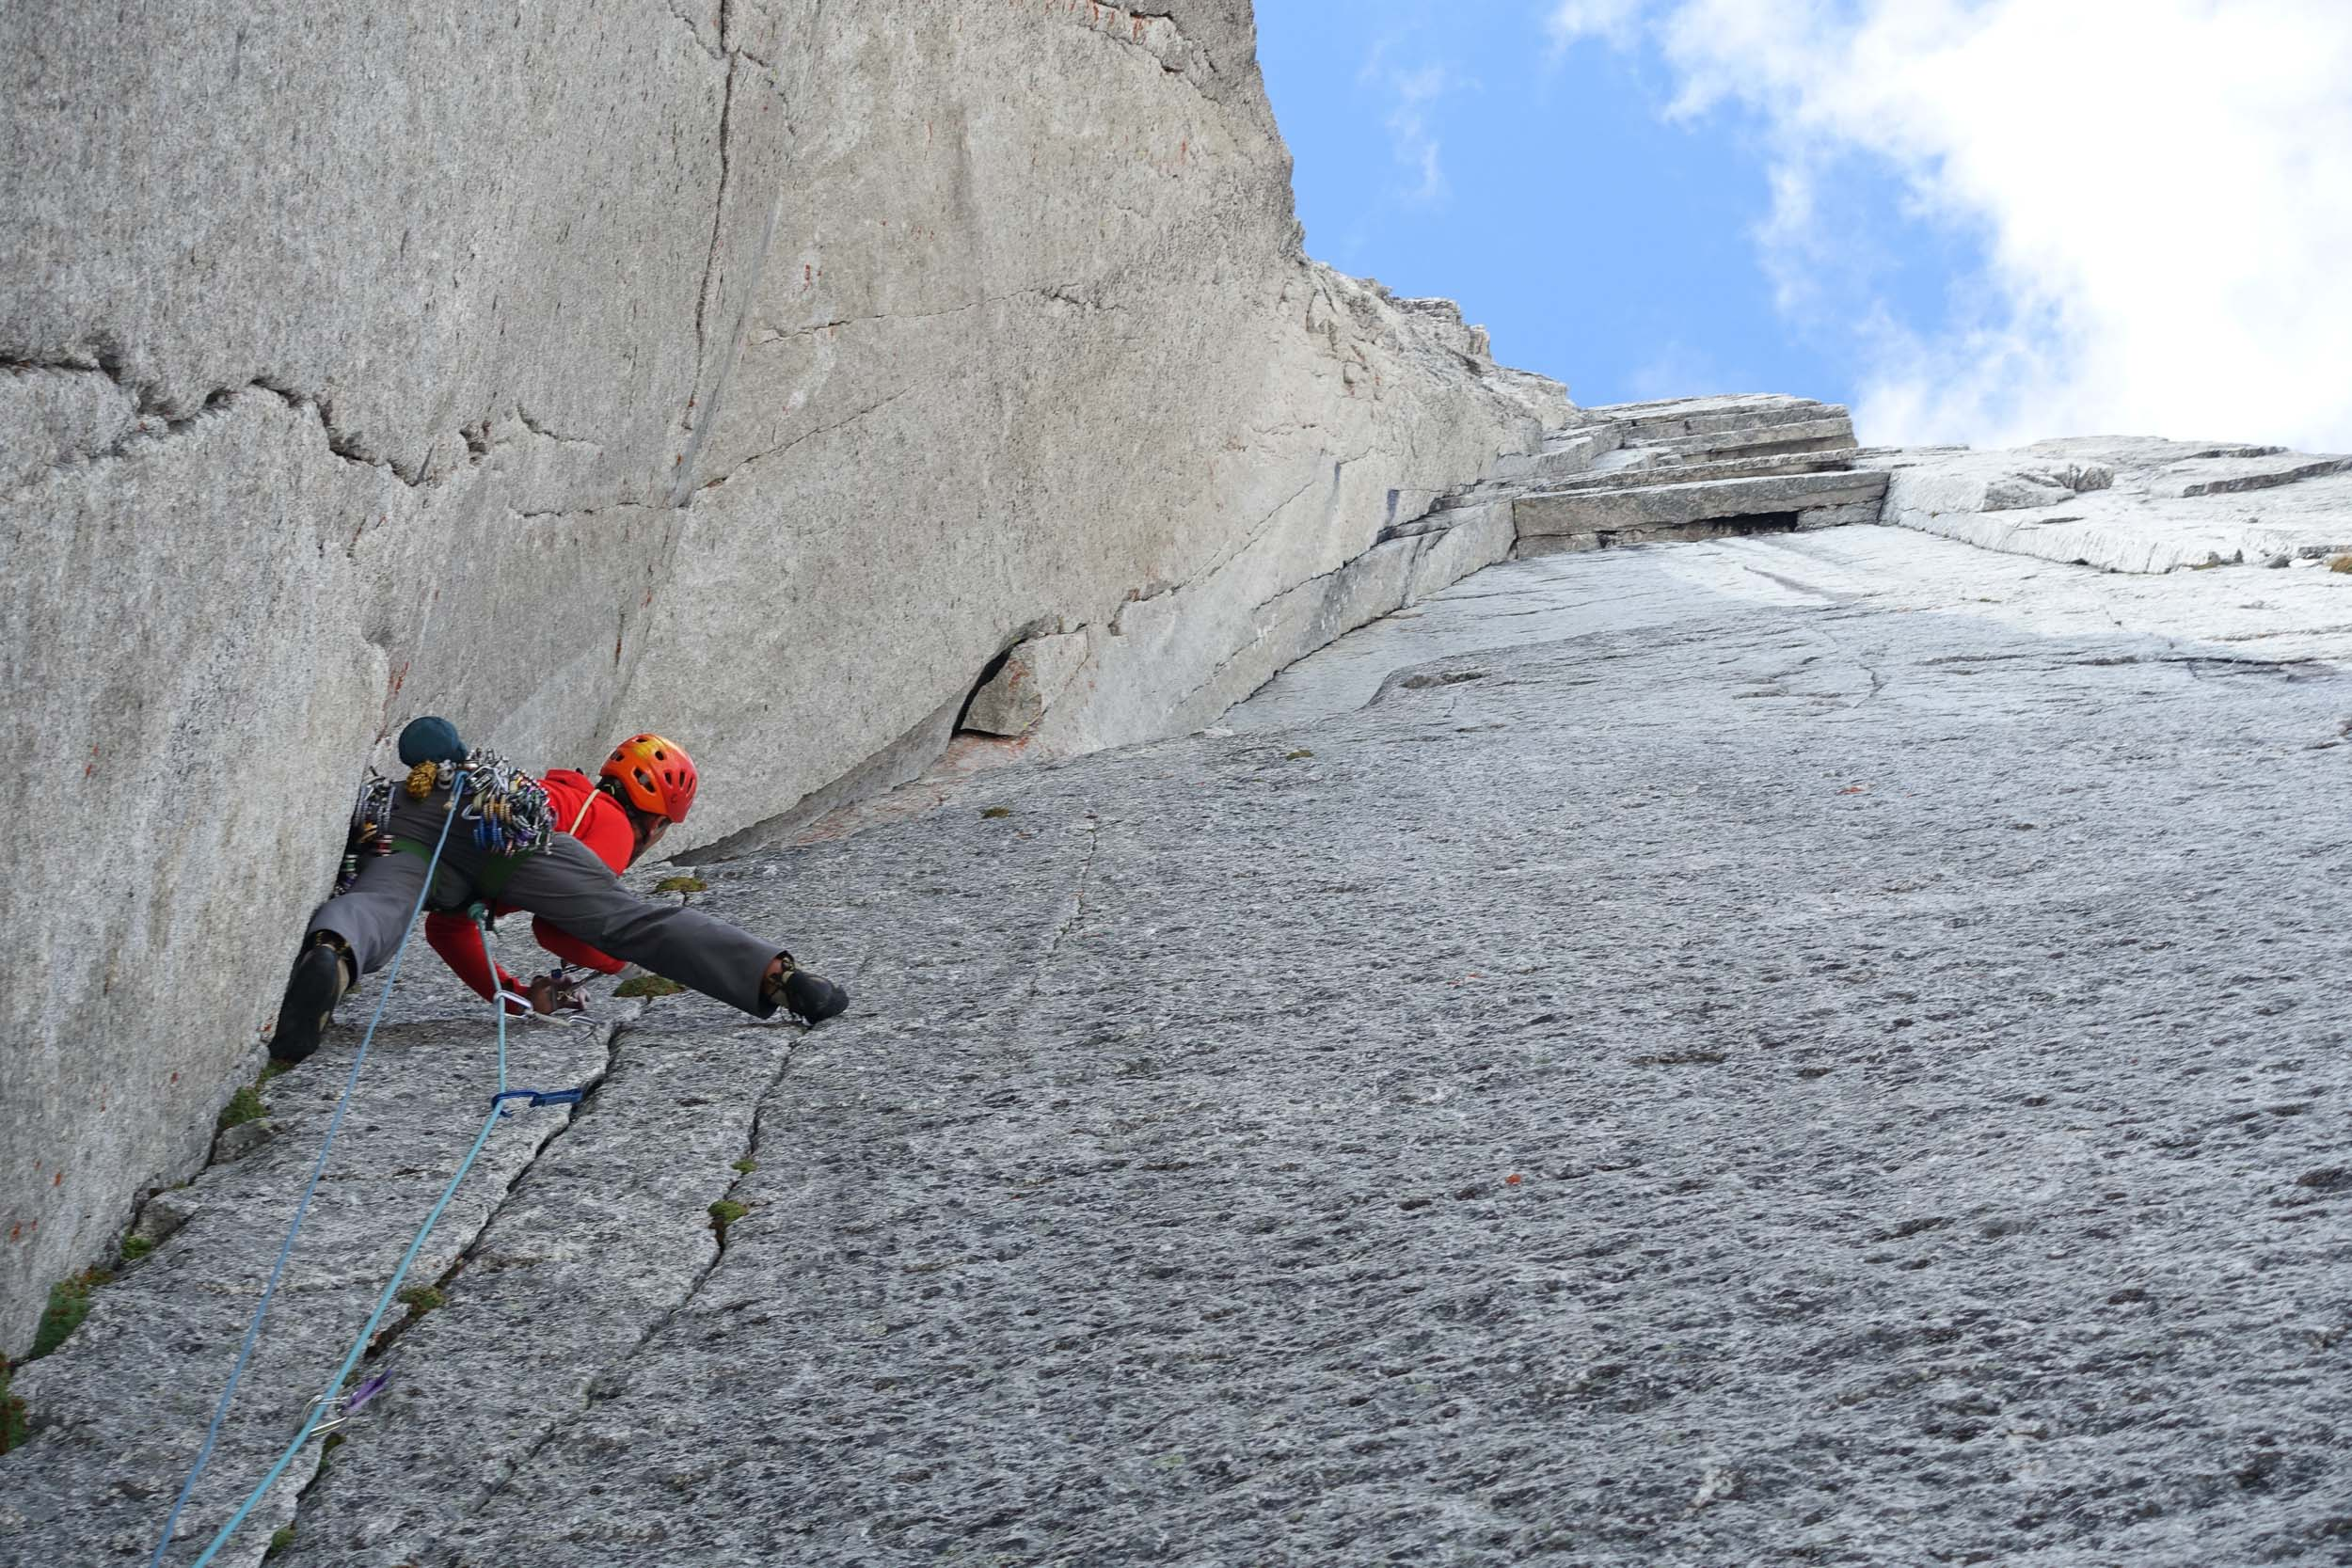 Jesse Huey on the first 5.11+ pitch of the Armageddon. Photo: Maury Birdwell